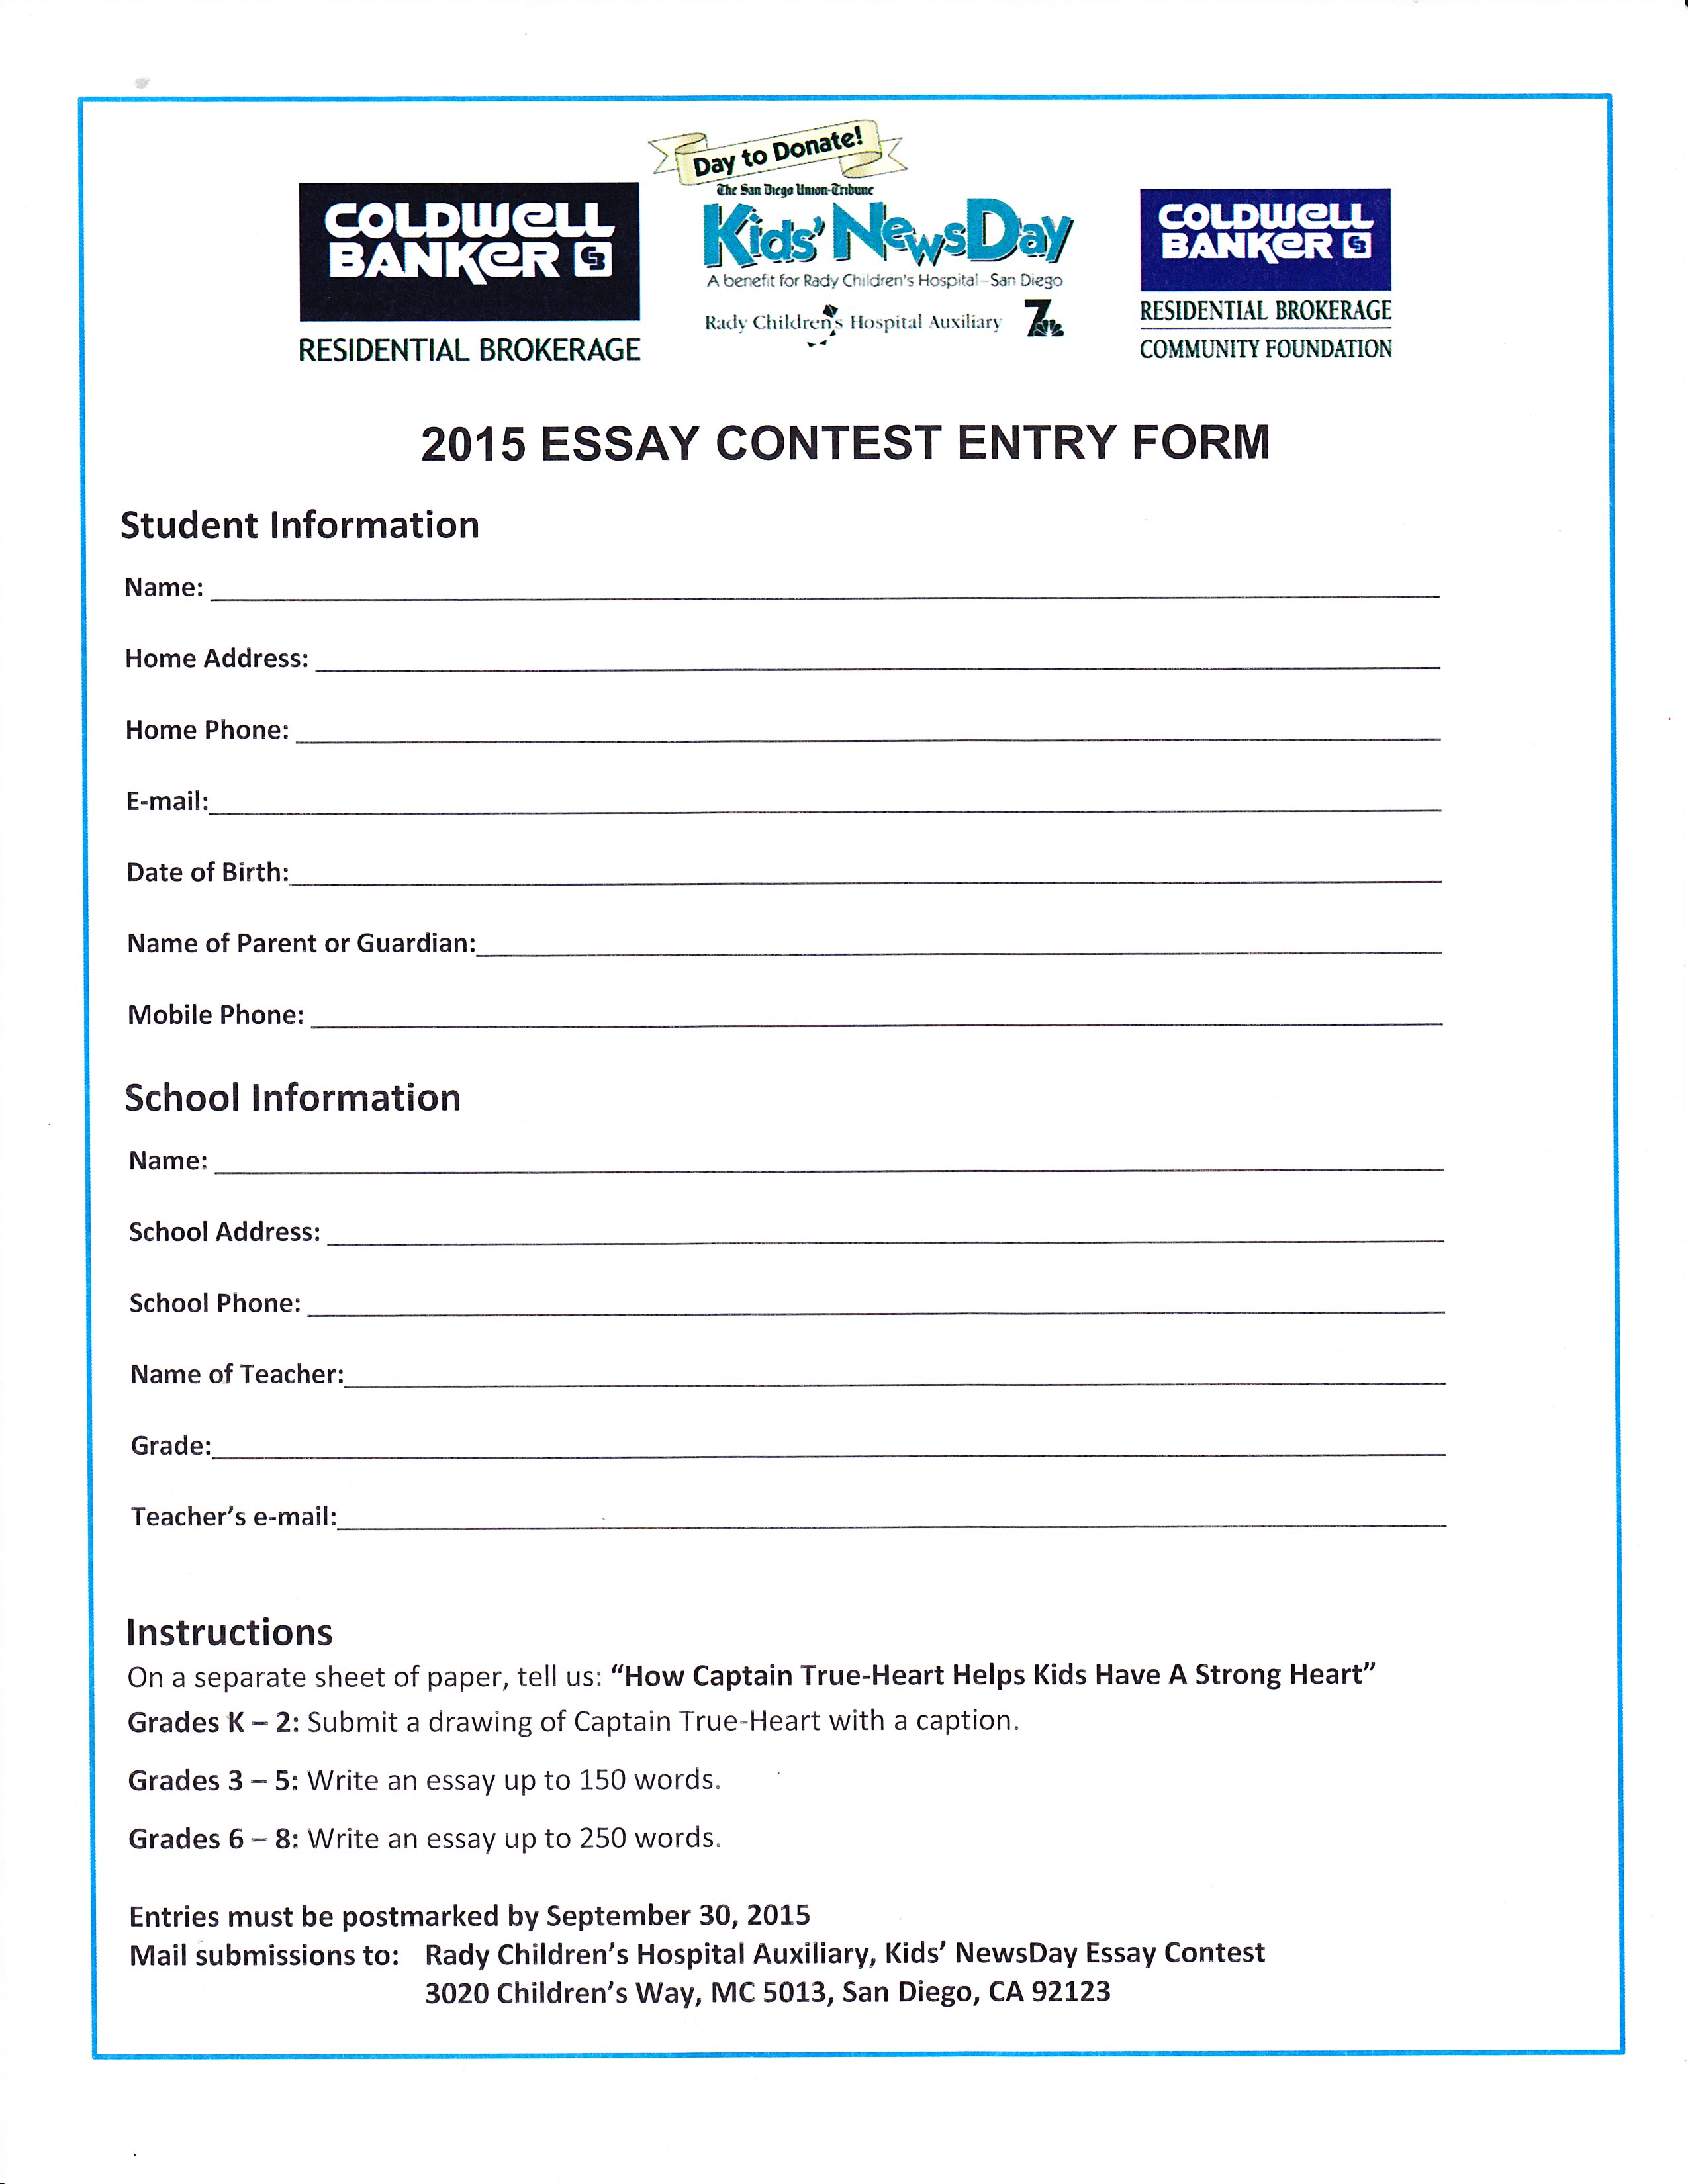 kids news day essay writing contest due sept 30th husky student scn 0097